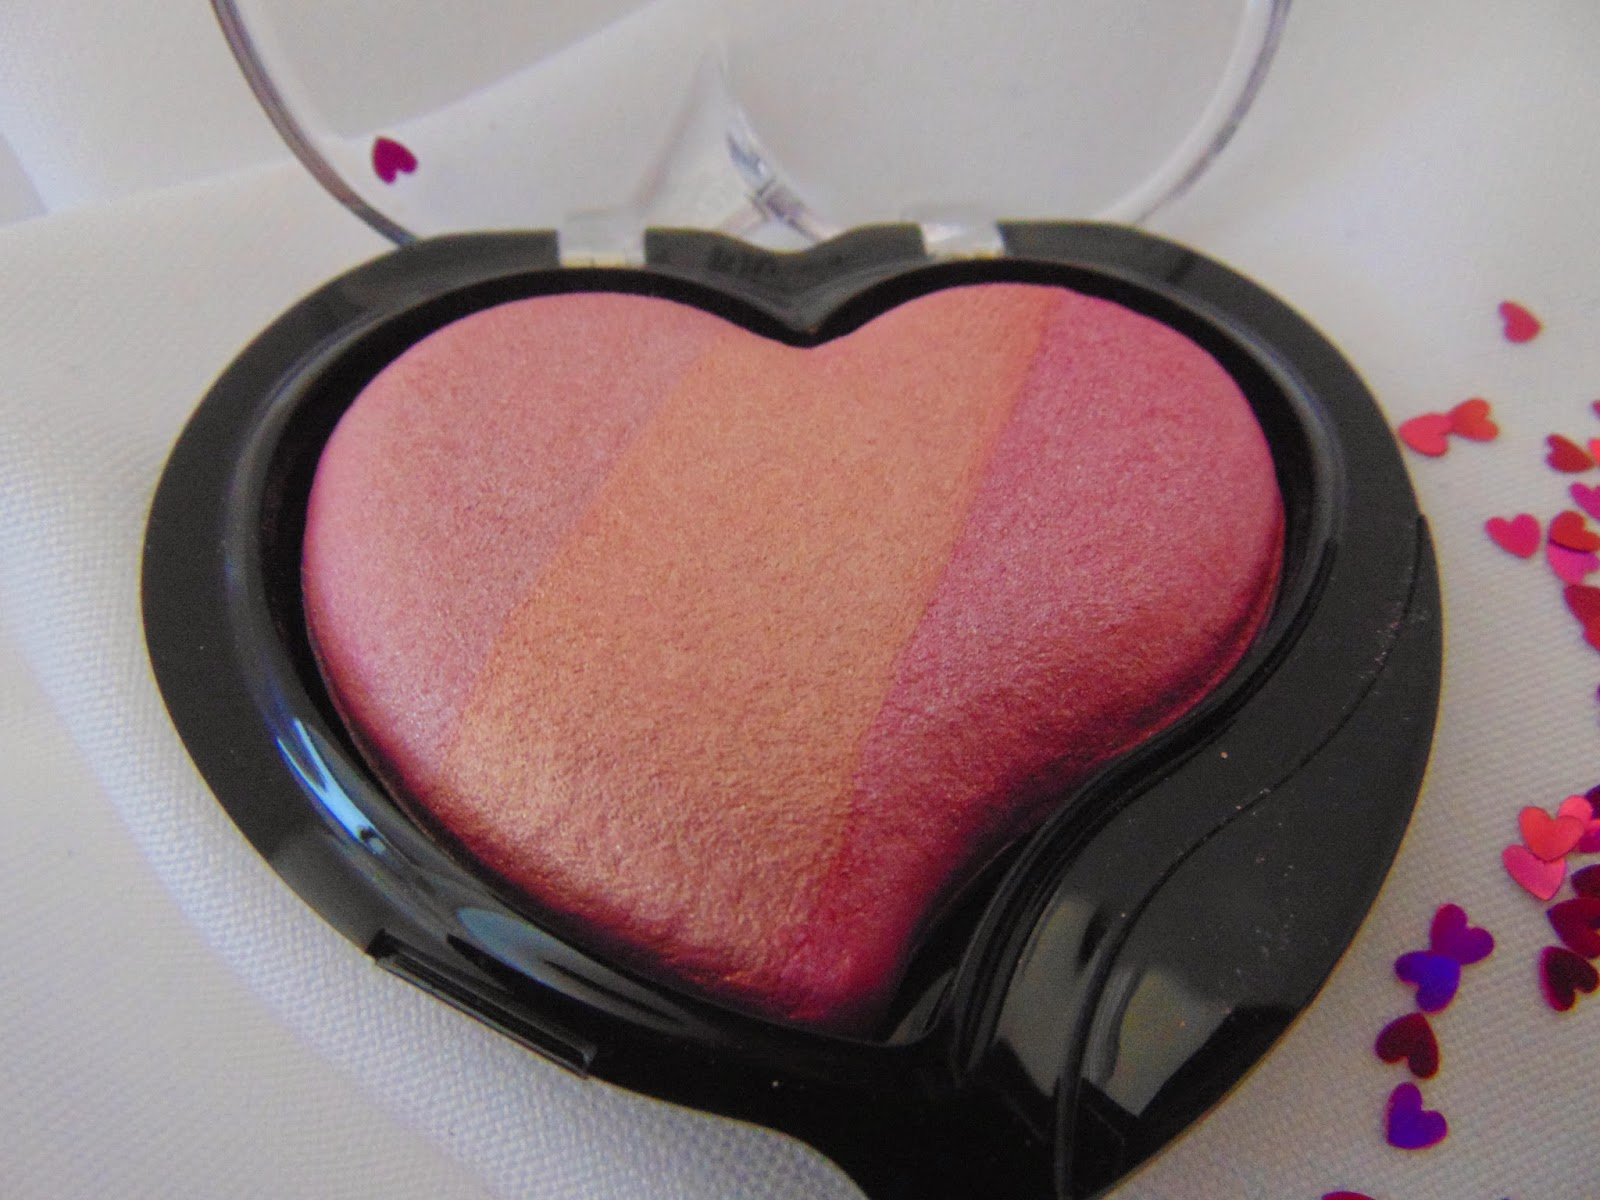 p2 Limited Edition: Just dream like - endless love trio blush - Greatest Wish - www.annitschkasblog.de